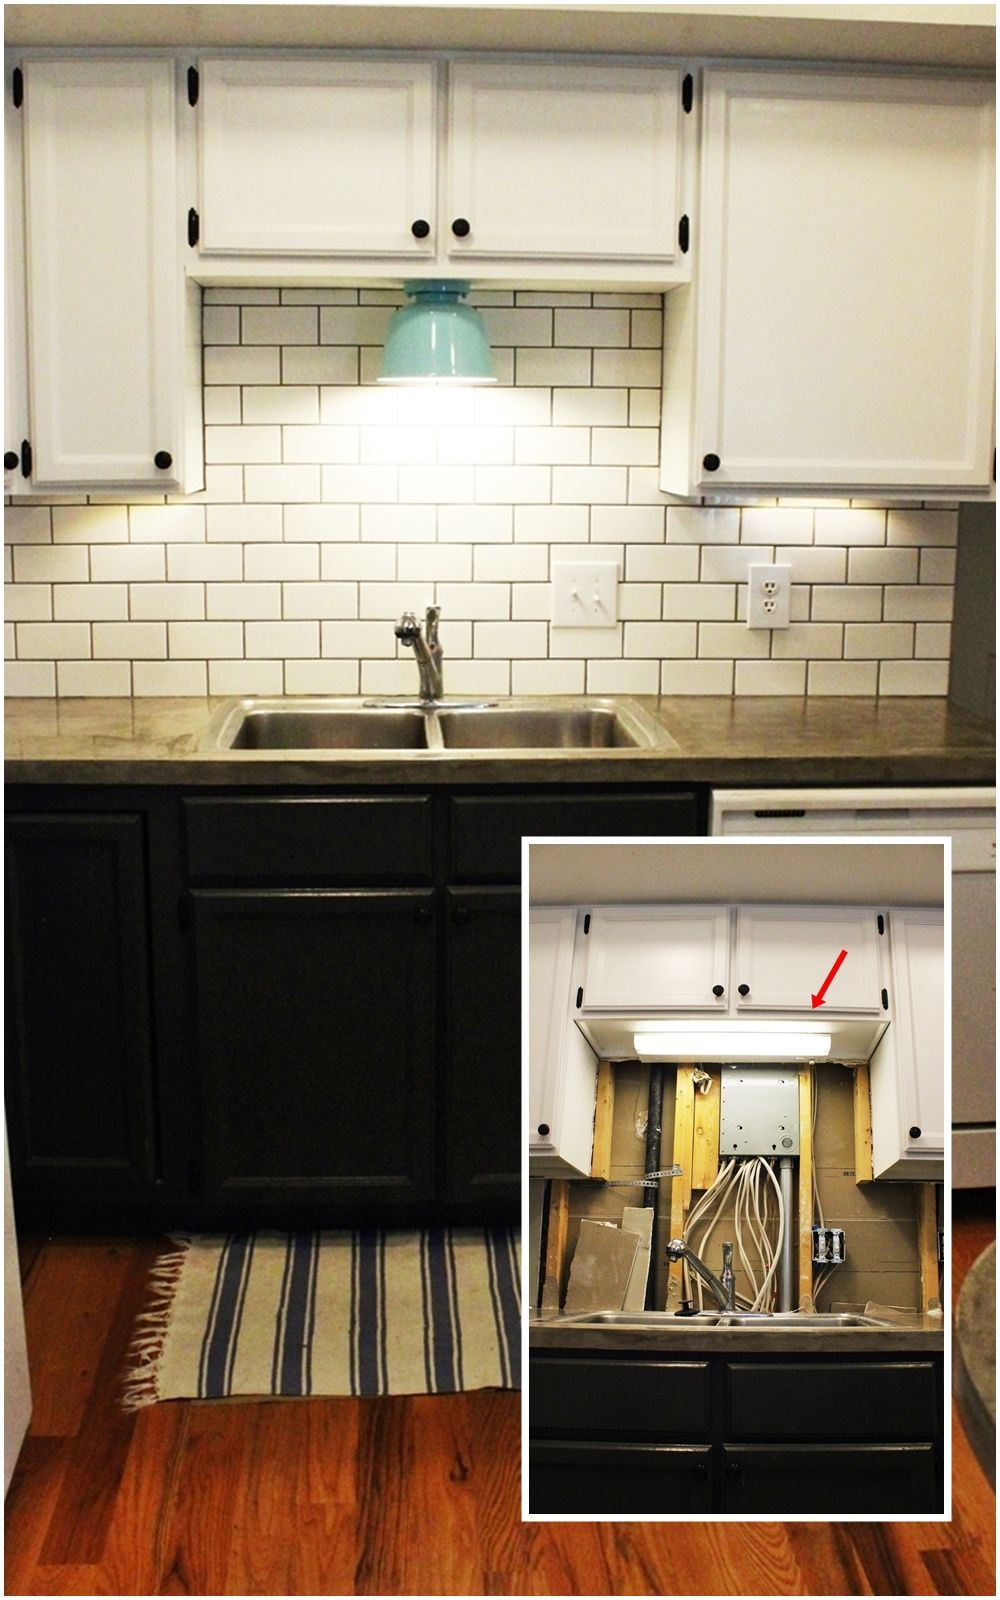 Diy kitchen lighting upgrade led under cabinet lights for Diy kitchen light fixtures